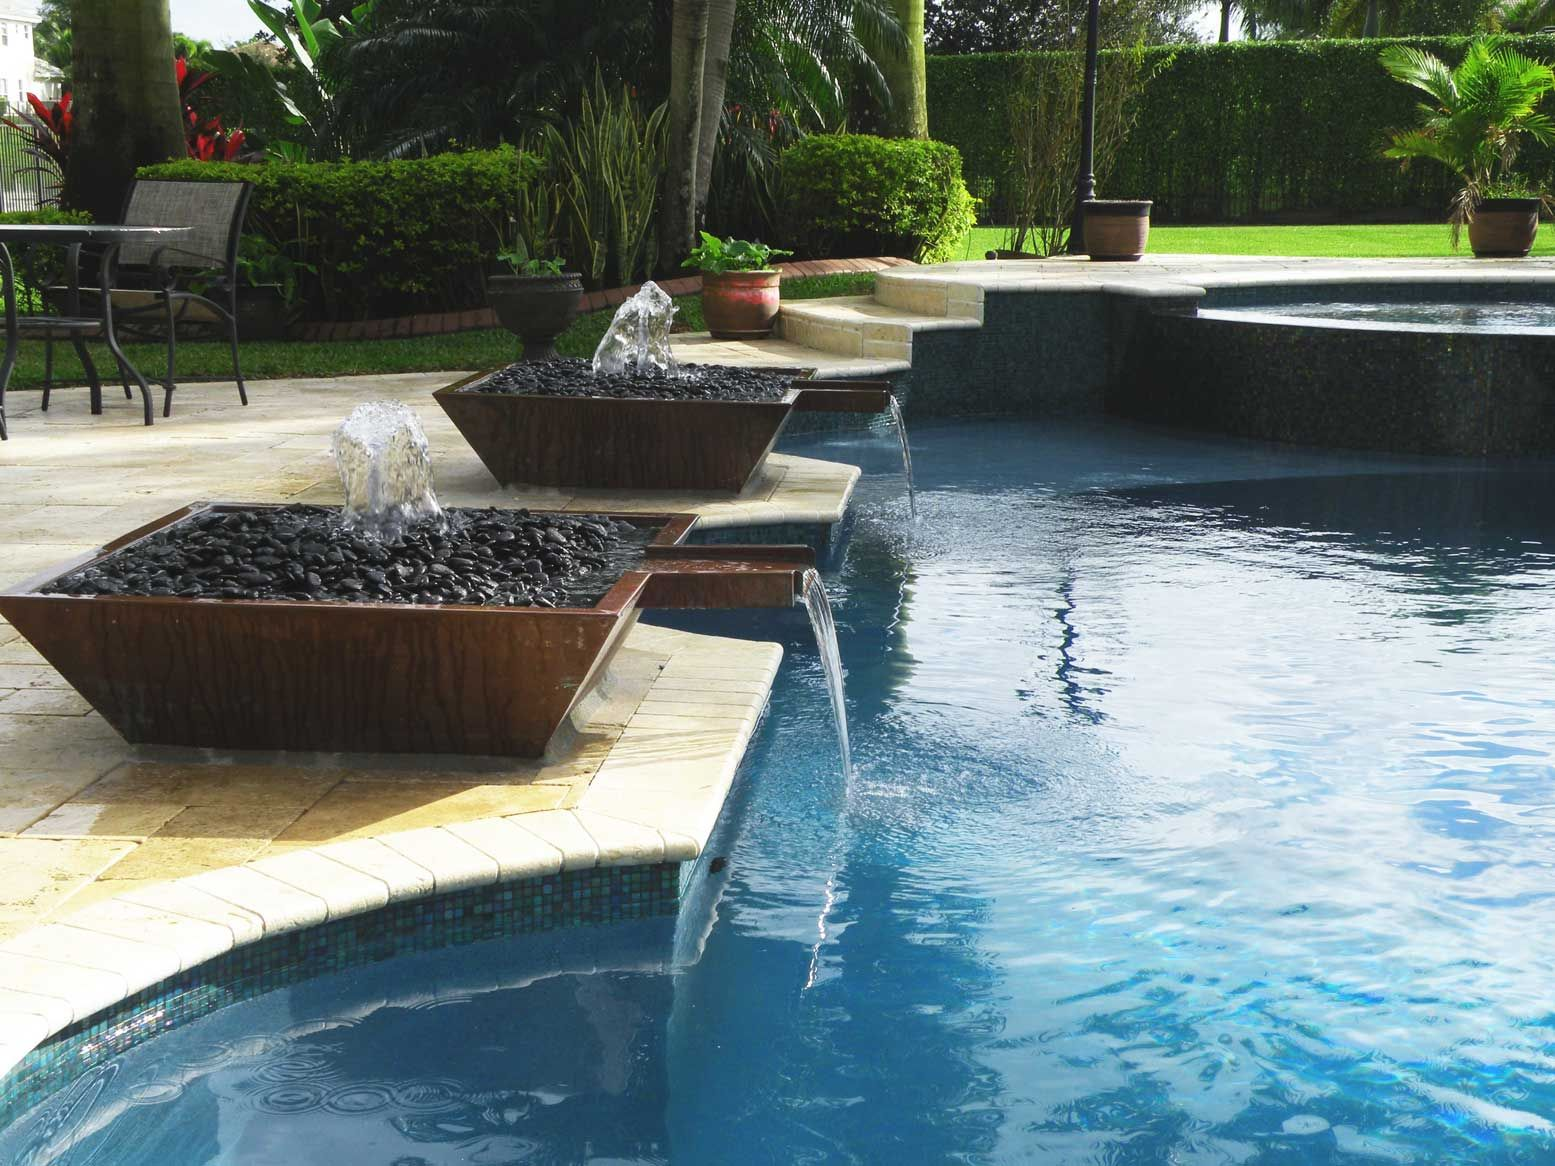 Pool walls pool water fountain design ideas design ideas pool walls pool water fountain design ideas design ideas outdoor swimming pool workwithnaturefo